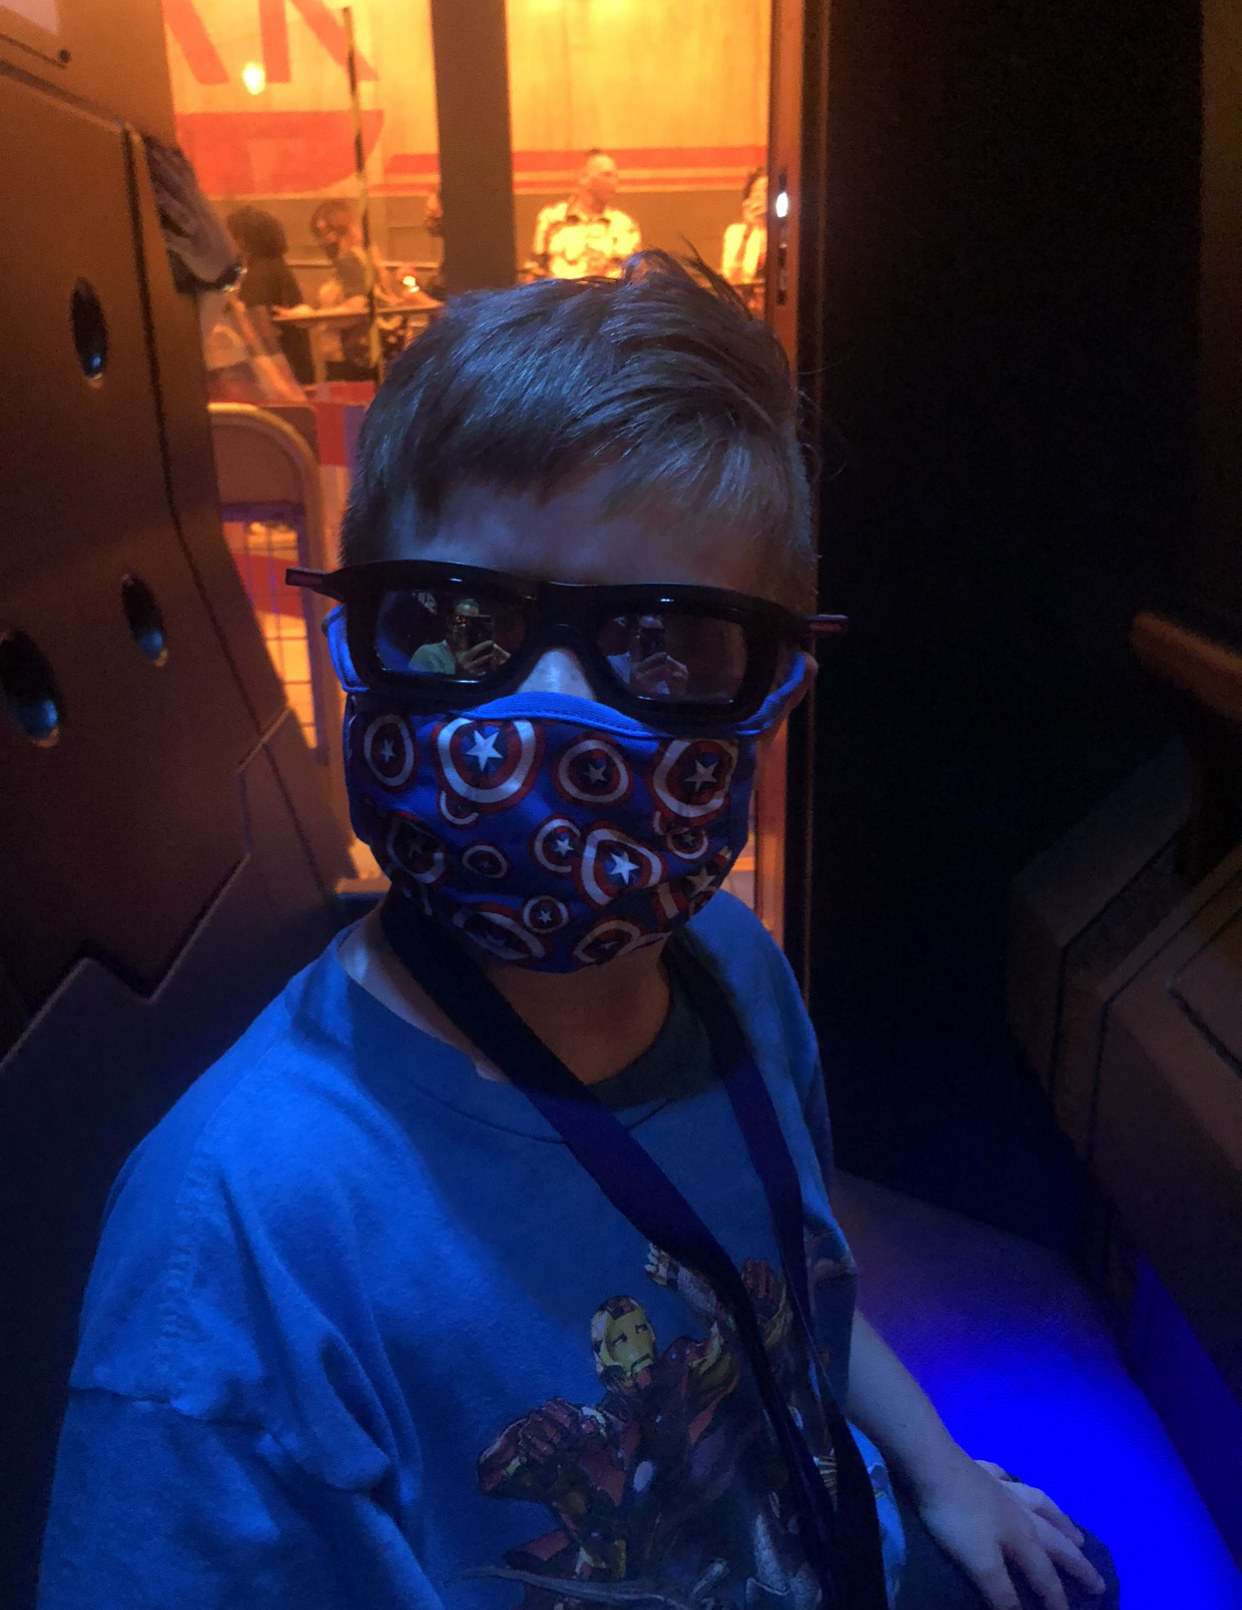 James (the boy) on the ride wearing 3D glasses